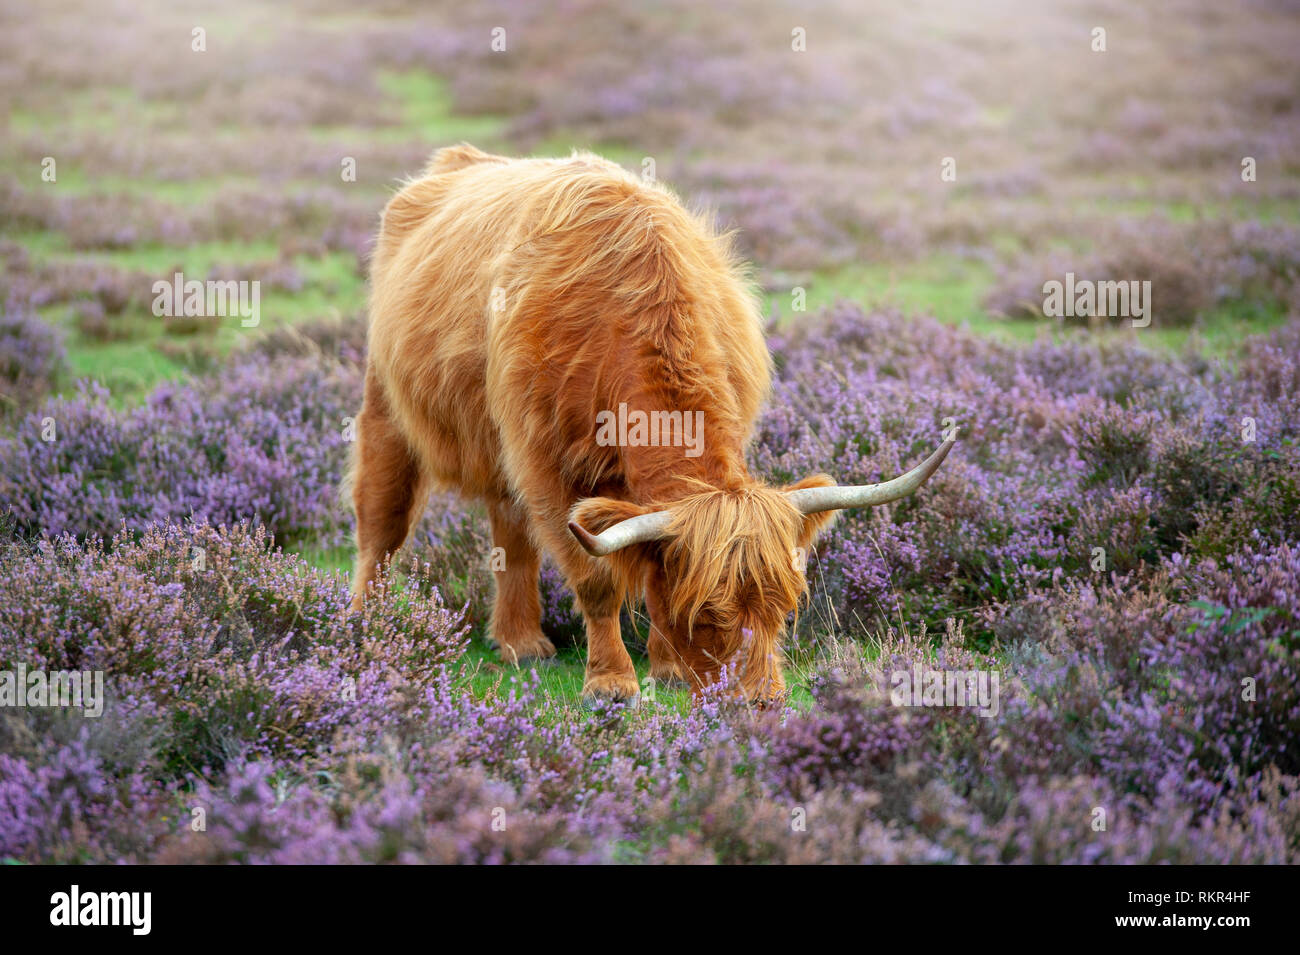 Image en gros plan d'un pâturage vache highland parmi l'été Heather dans le parc national New Forest, Hampshire, England, UK Banque D'Images